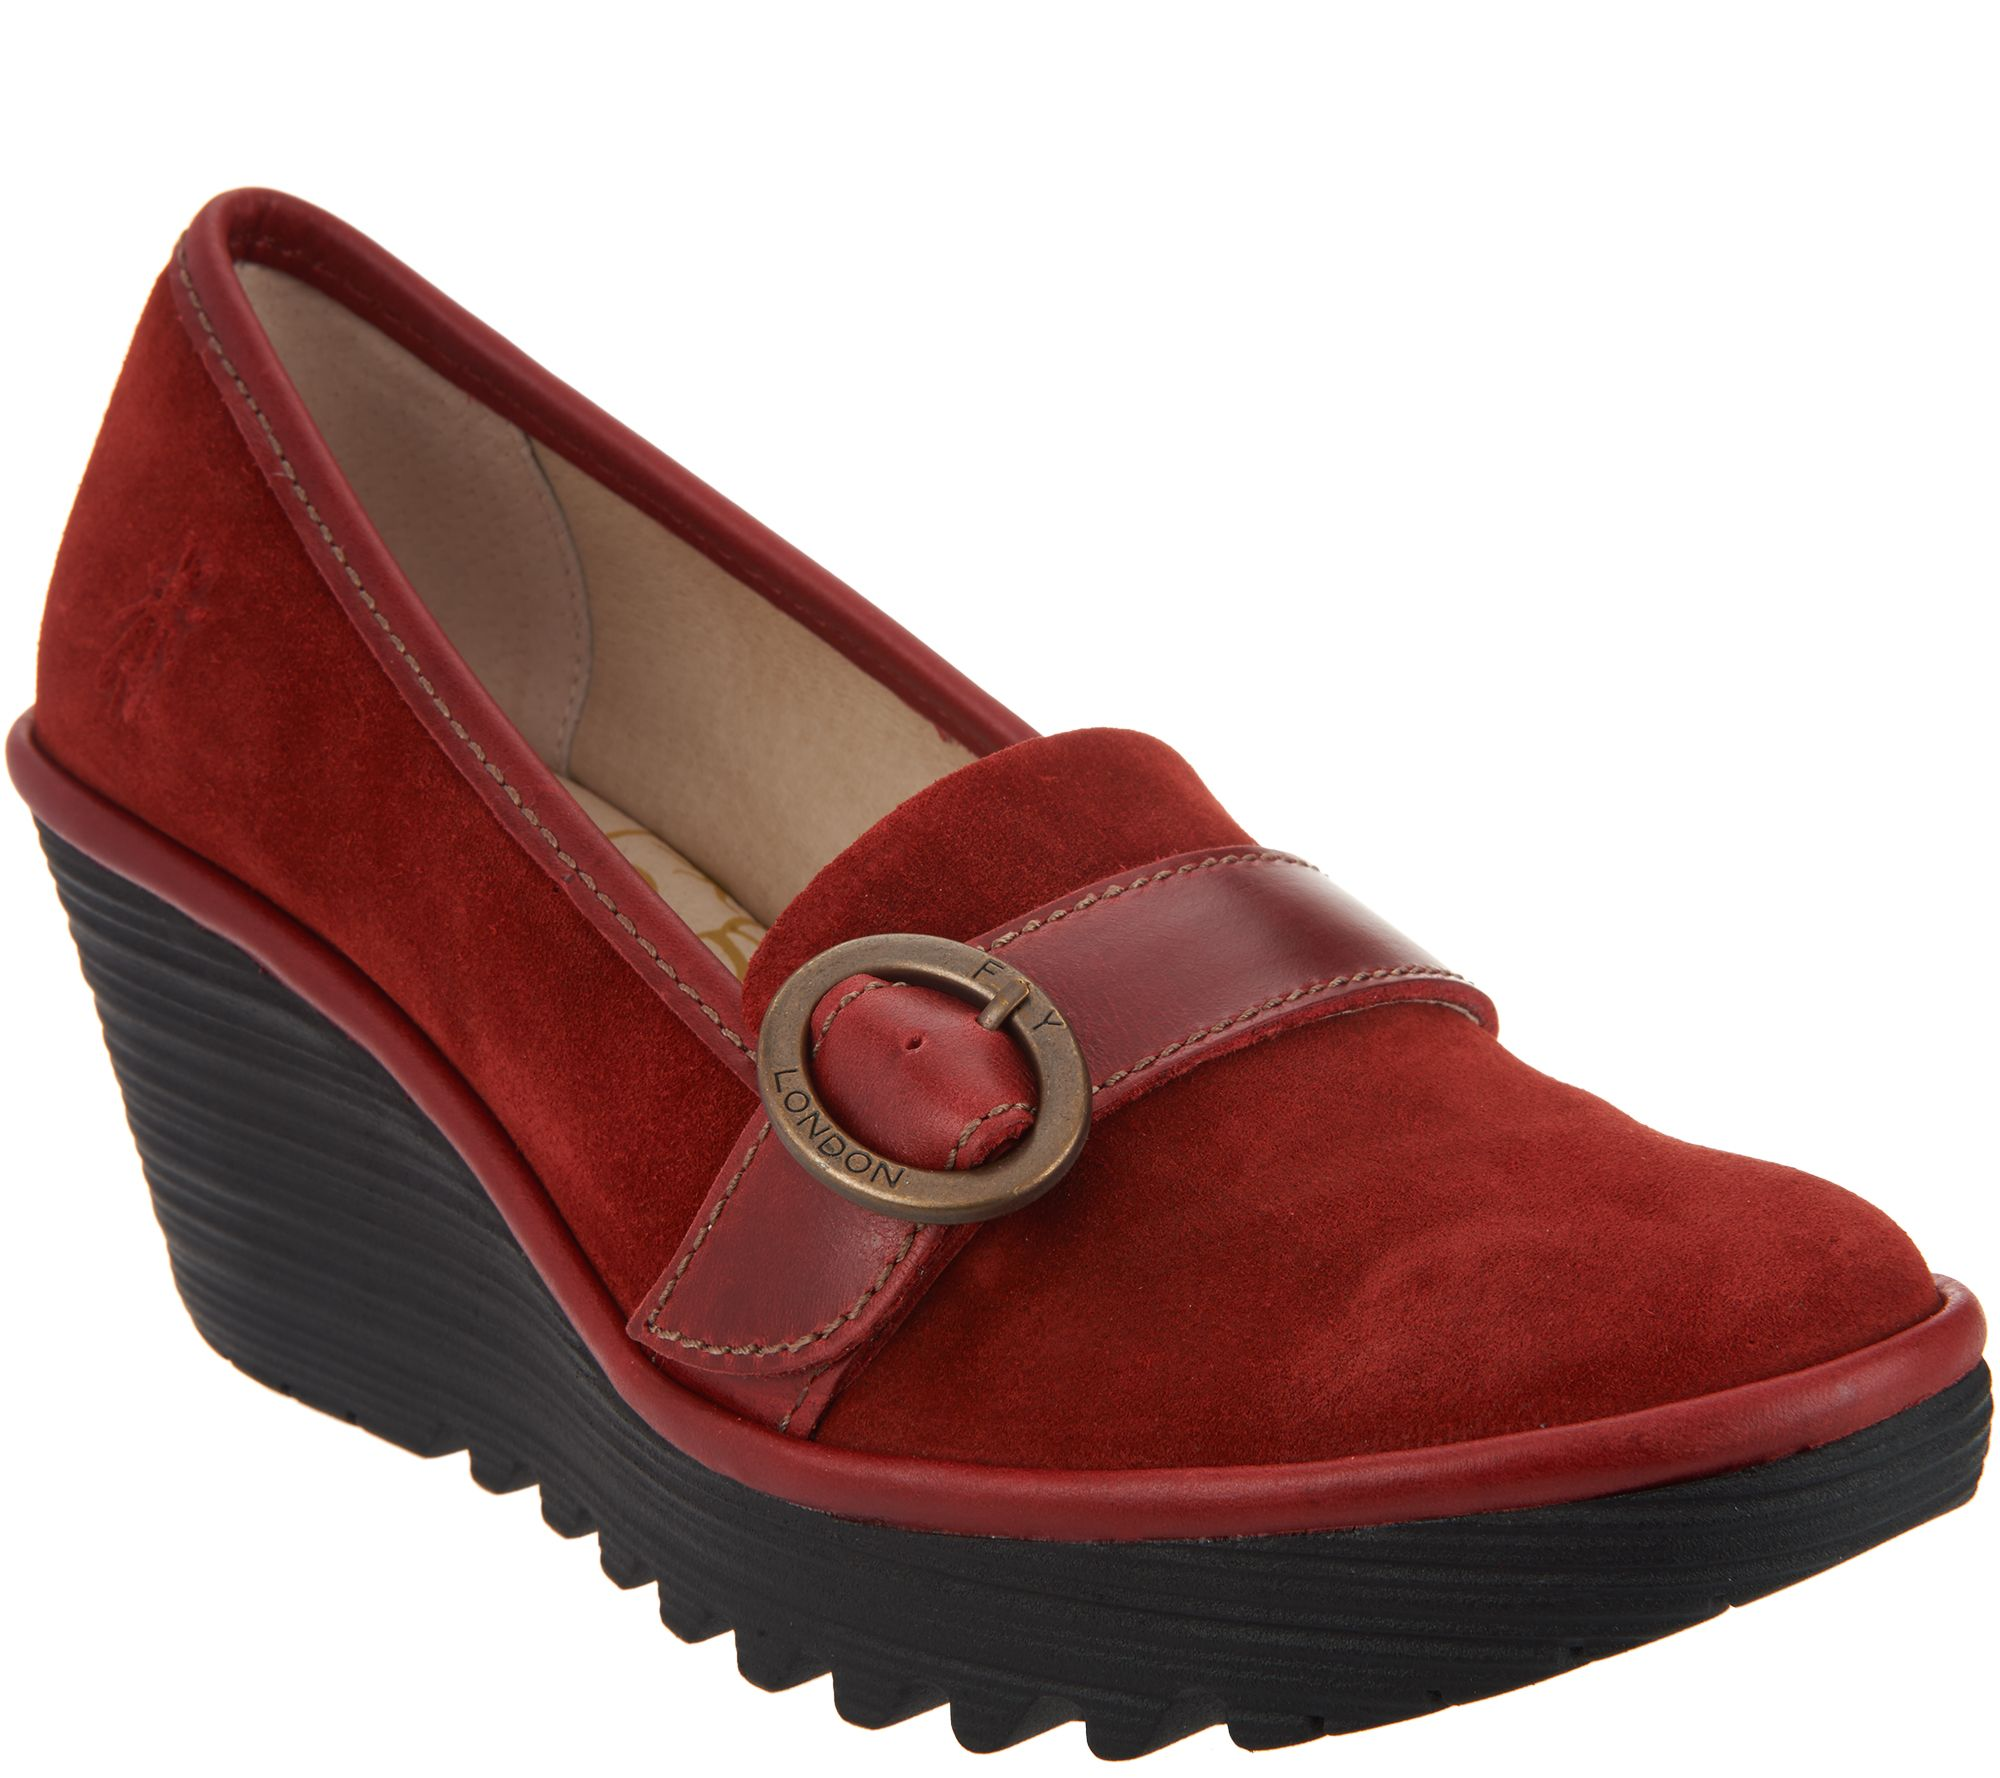 9b41ae65dbe FLY London Suede Wedge Loafers - Yond - Page 1 — QVC.com